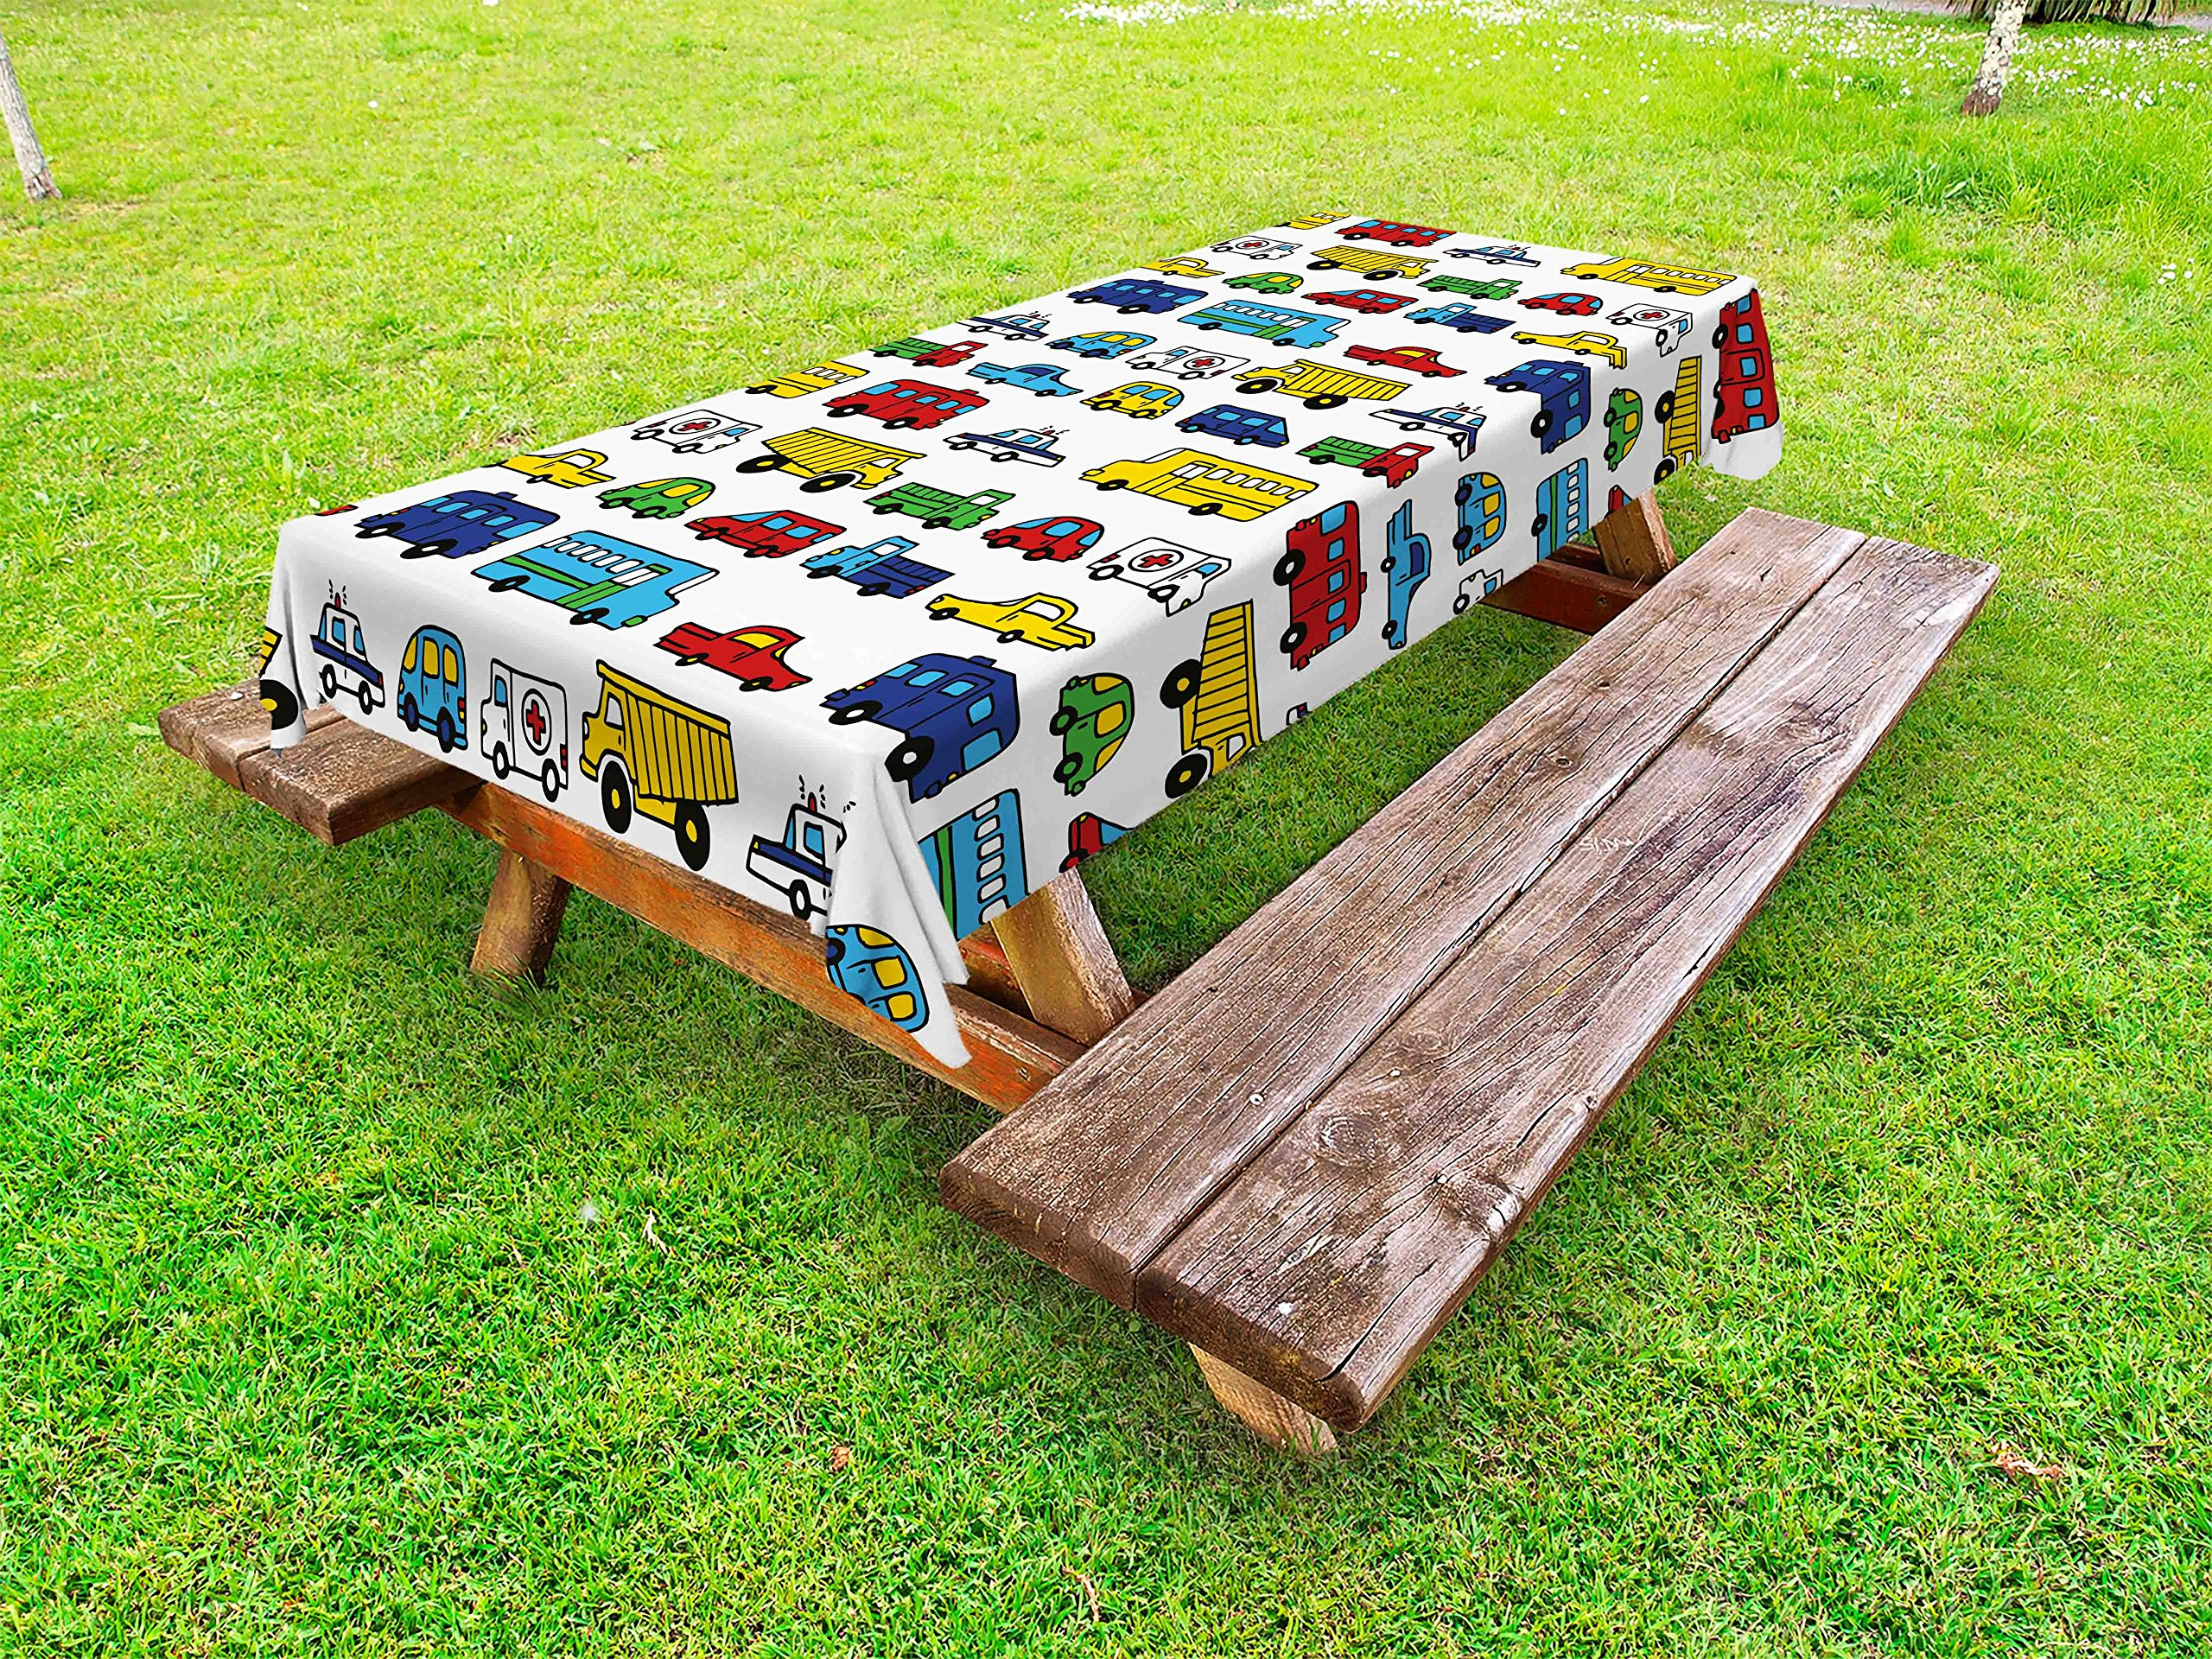 Lunarable Boy's Room Outdoor Tablecloth, Hand Drawn Doodled Car Pattern Cartoonish Style Police Ambulance School Bus Car, Decorative Washable Picnic Table Cloth, 58 X 120 inches, Multicolor